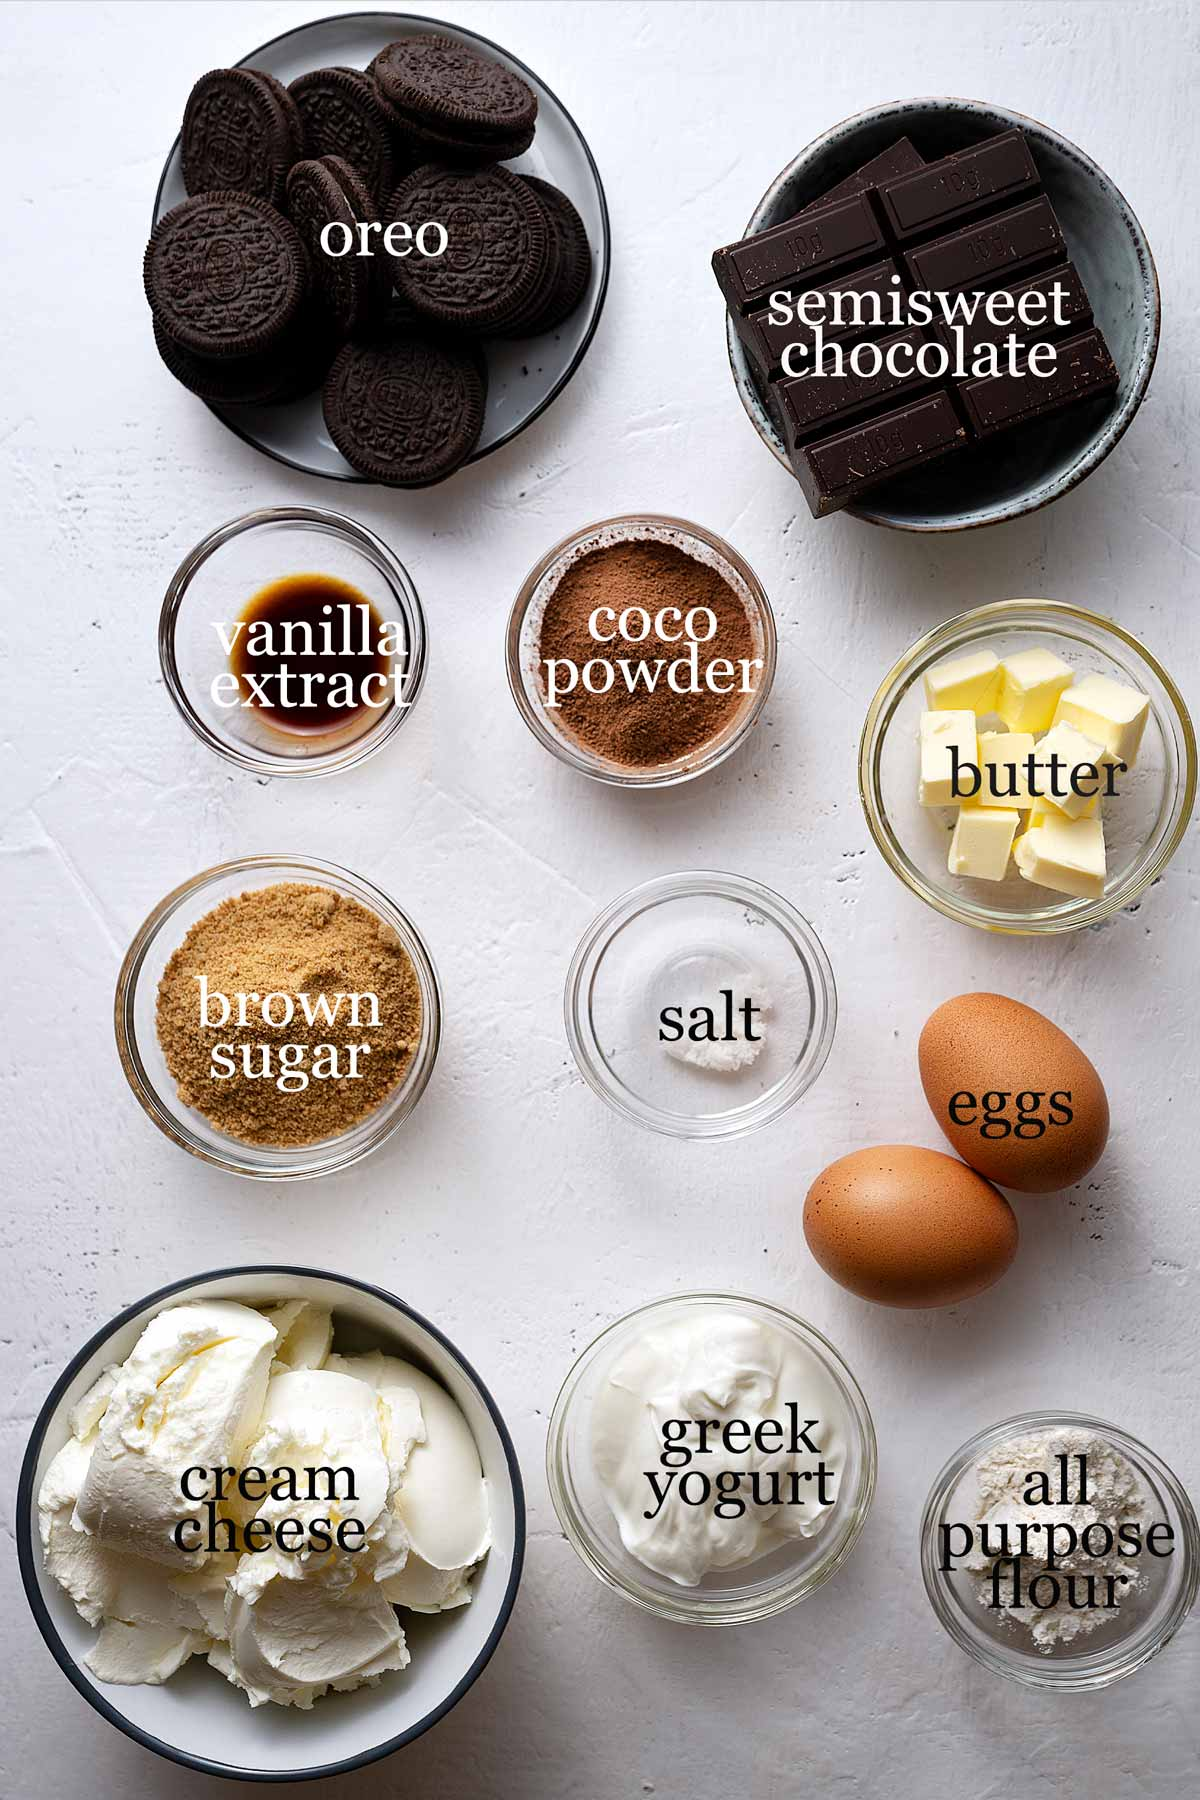 chocolate cheesecake ingredientes.